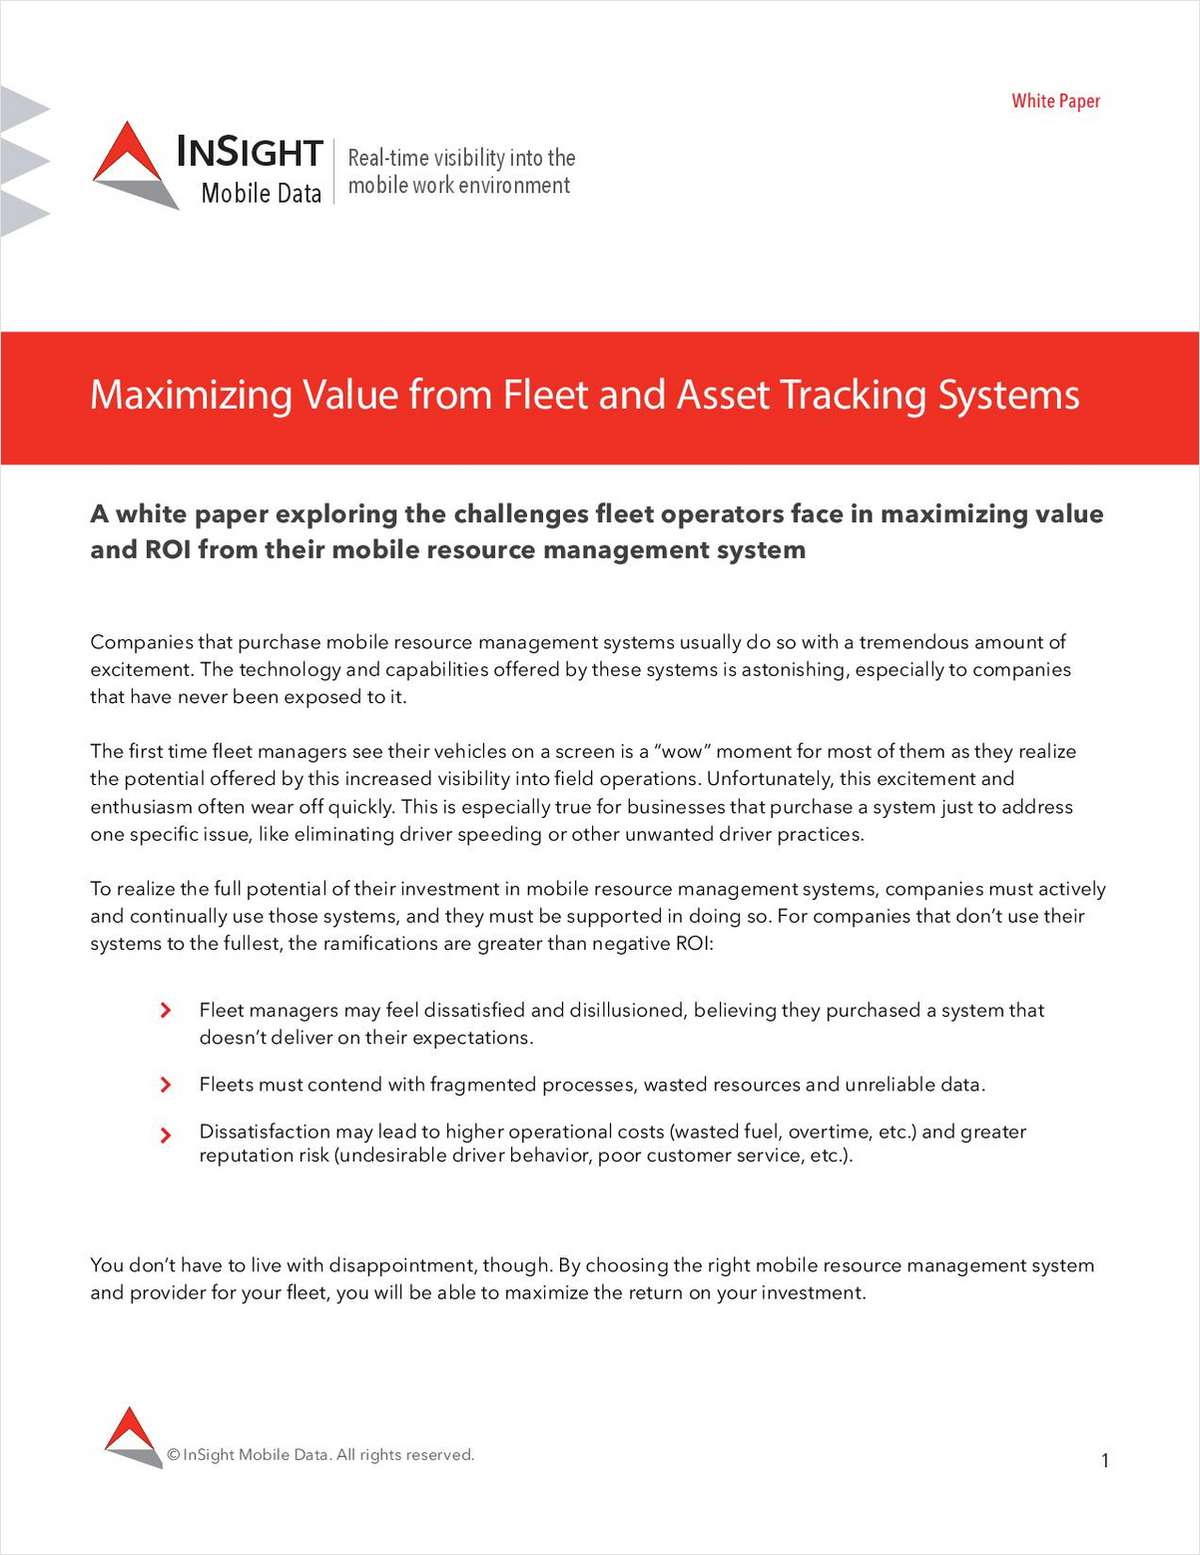 Maximizing Value from Fleet and Asset Tracking Systems